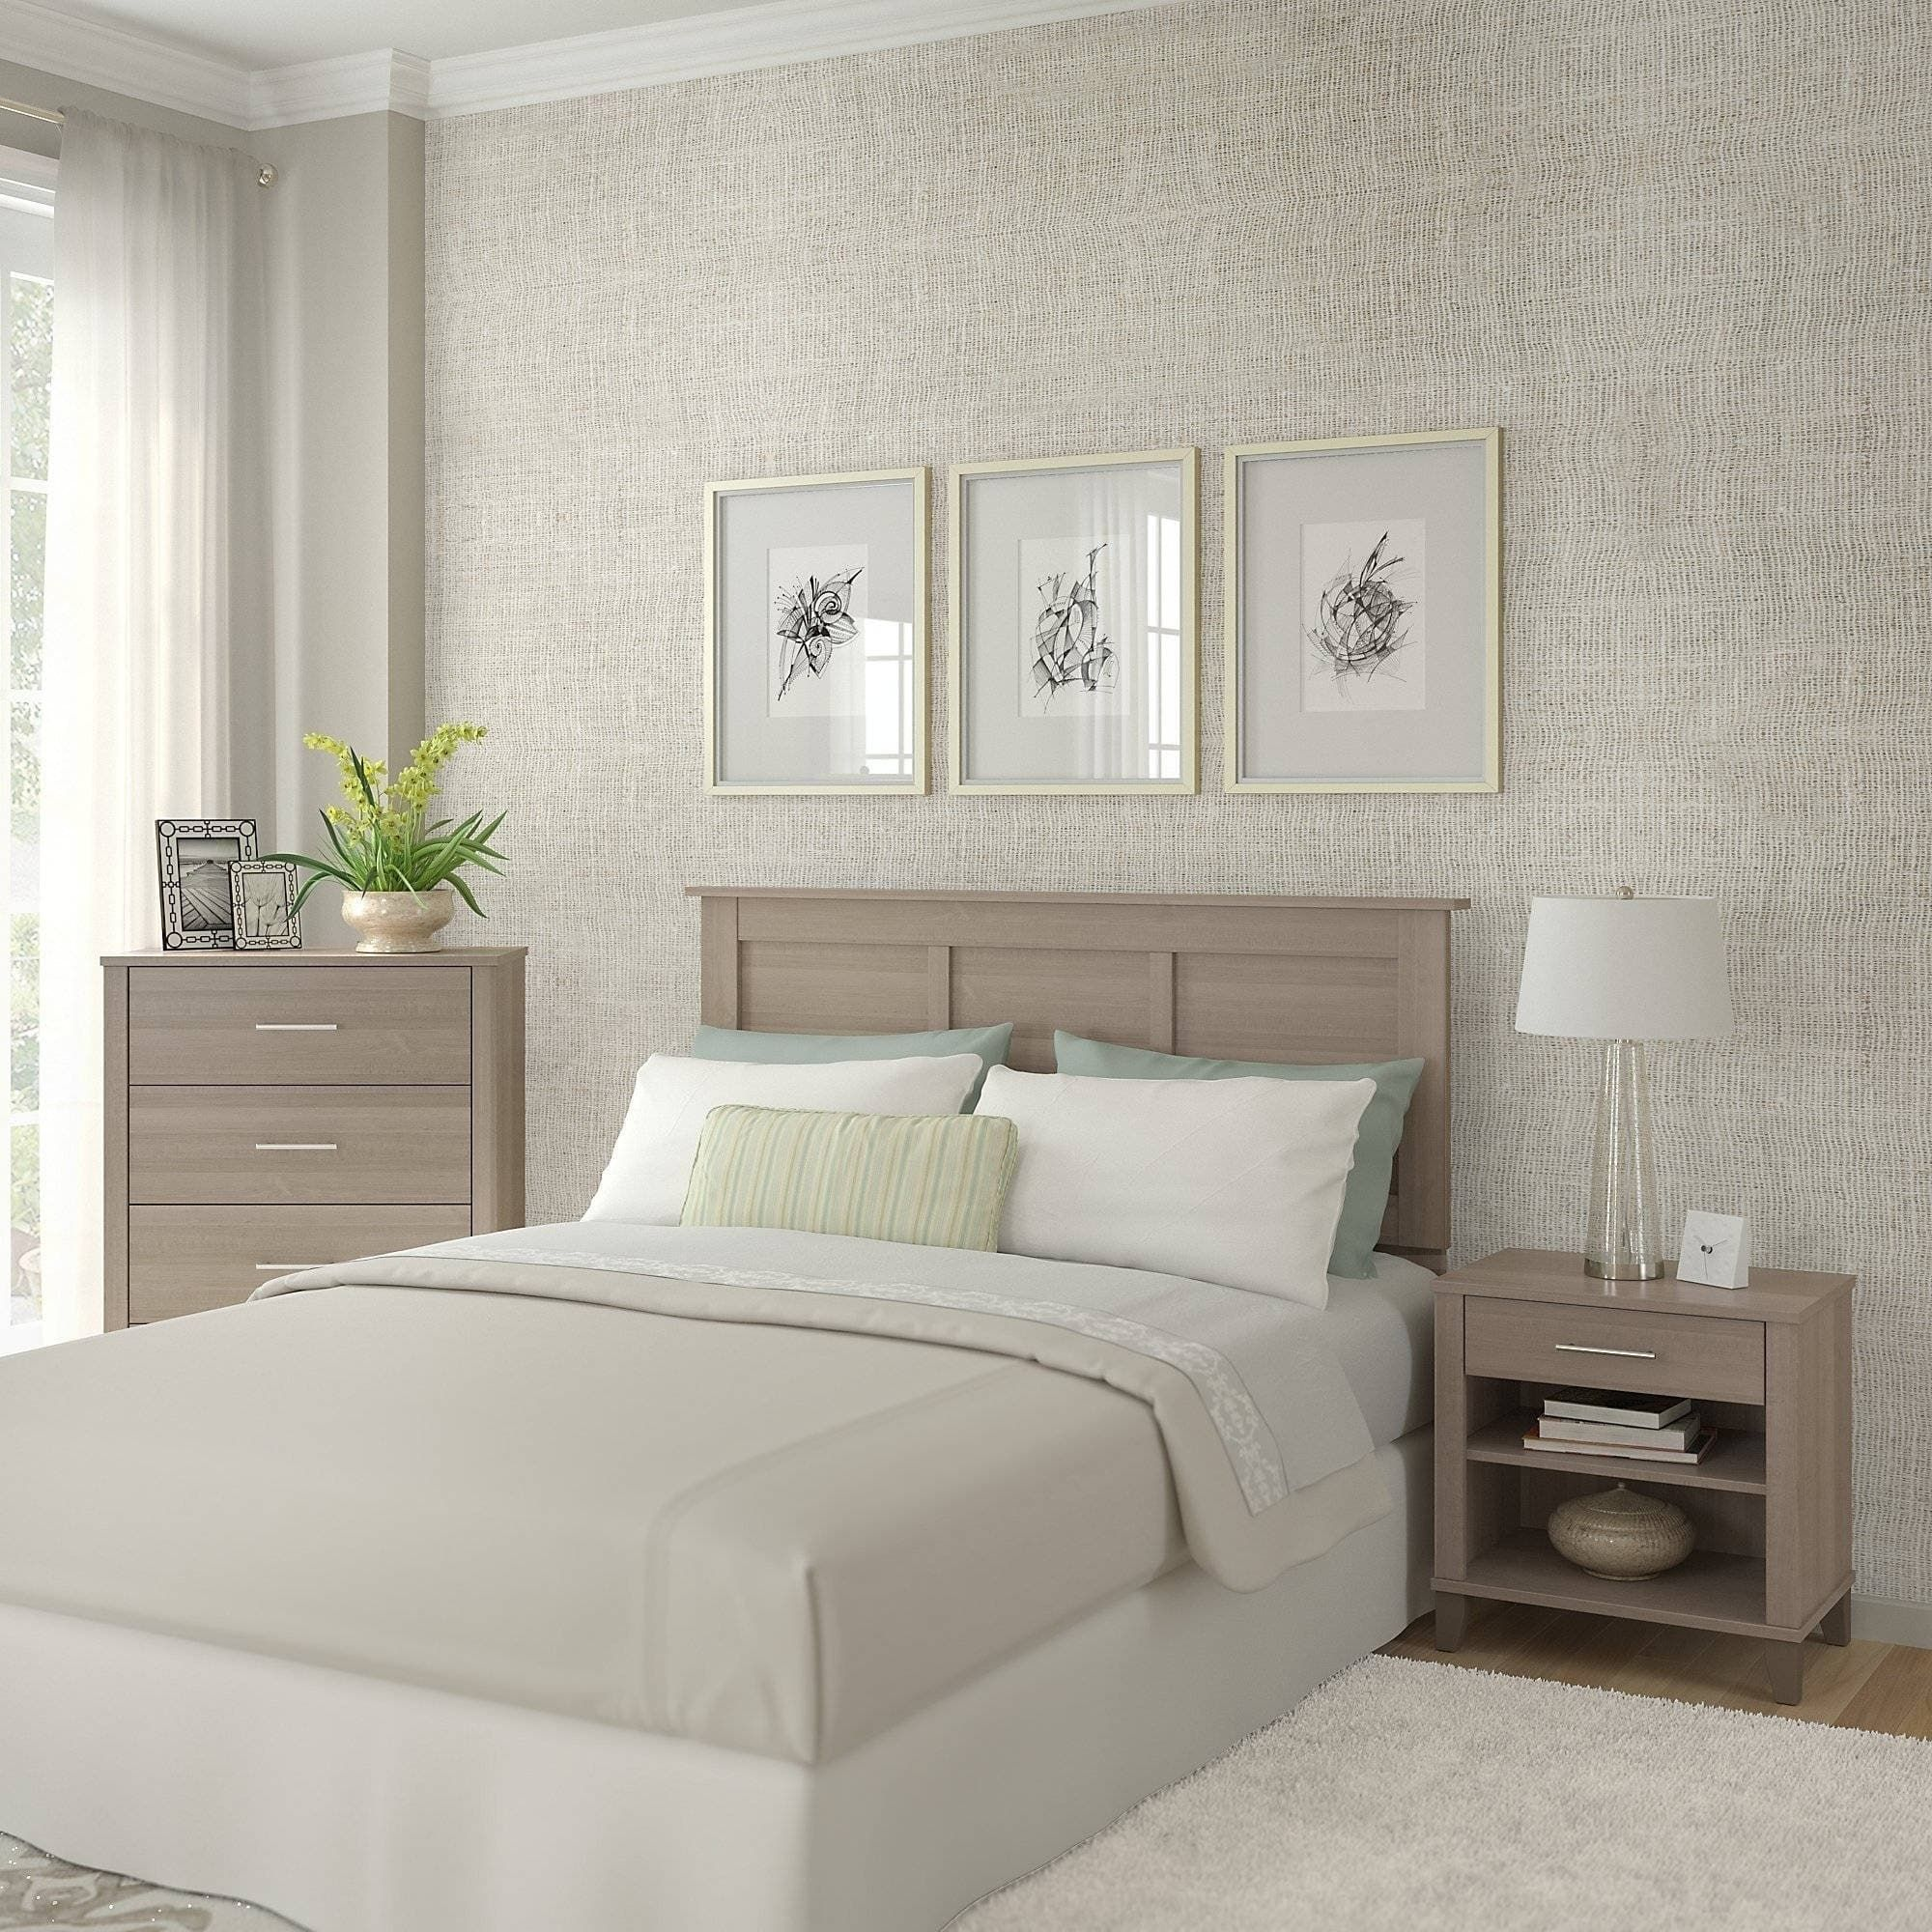 Kids Bedroom Furniture Stores: Oliver & James Elizabeth Ash Grey Headboard, Dresser, And